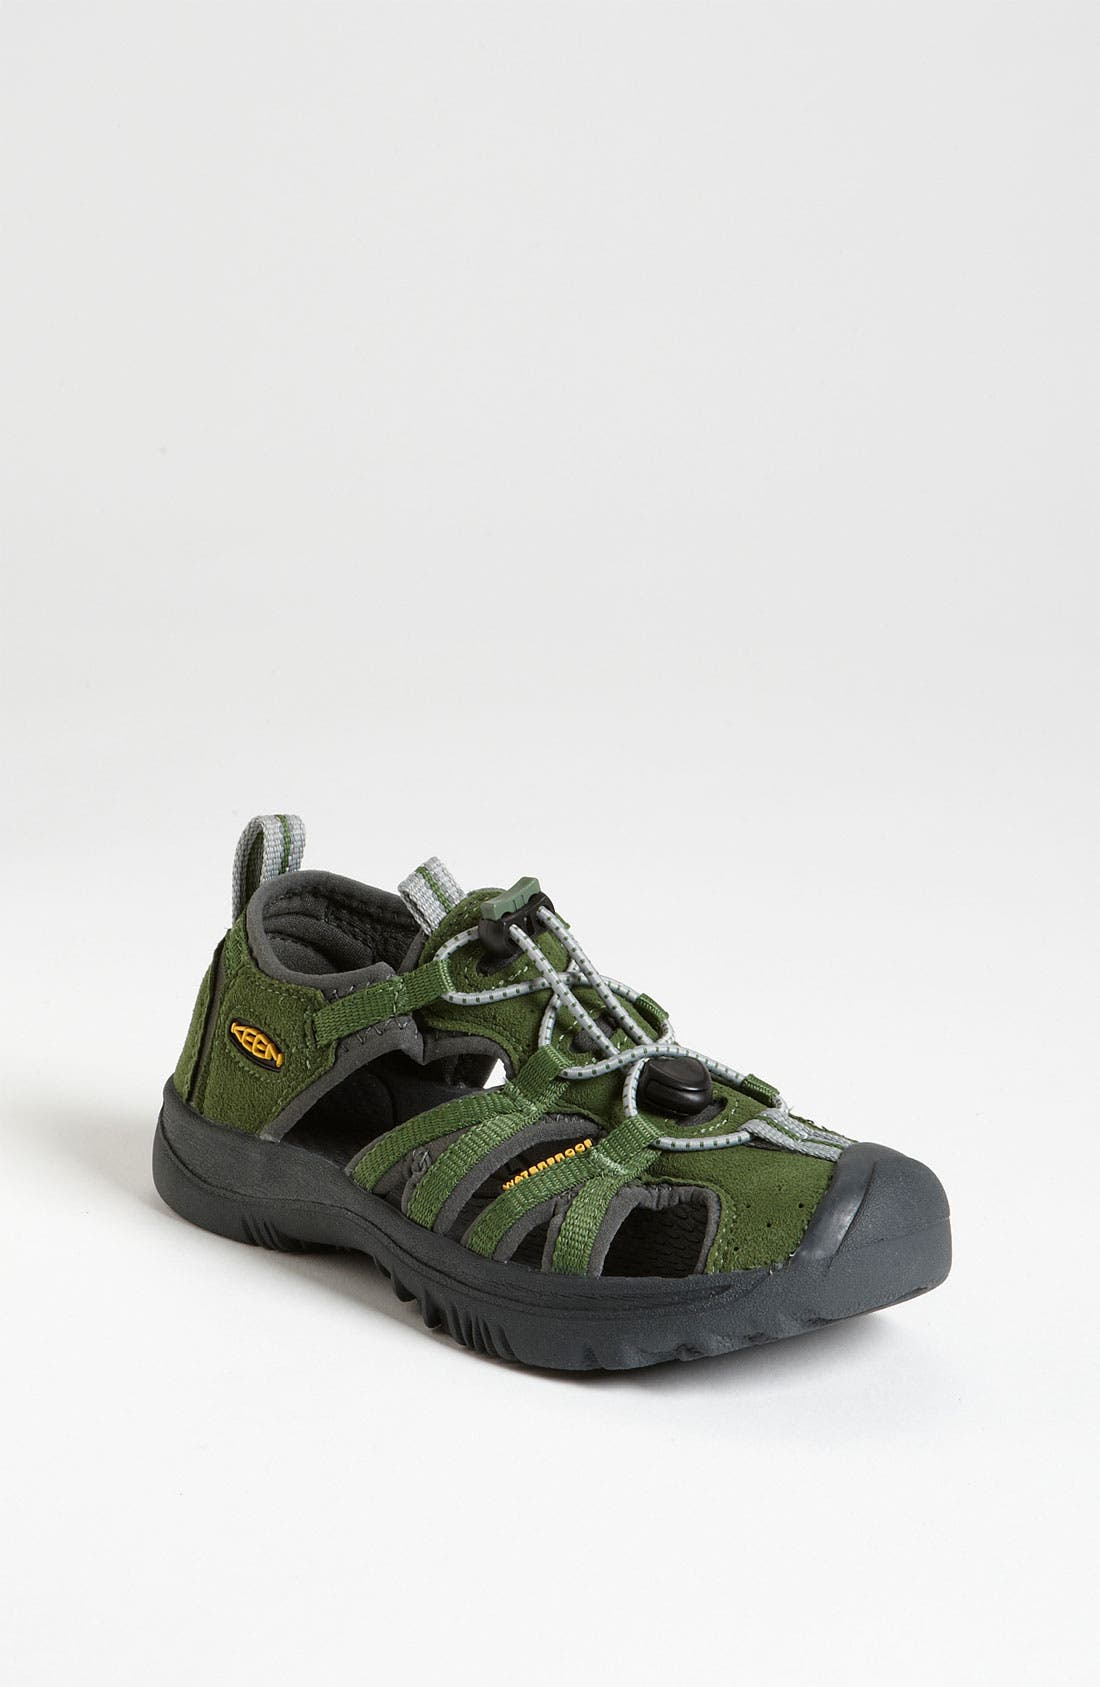 Alternate Image 1 Selected - Keen 'Kanyon' Sandal (Toddler, Little Kid & Big Kid)